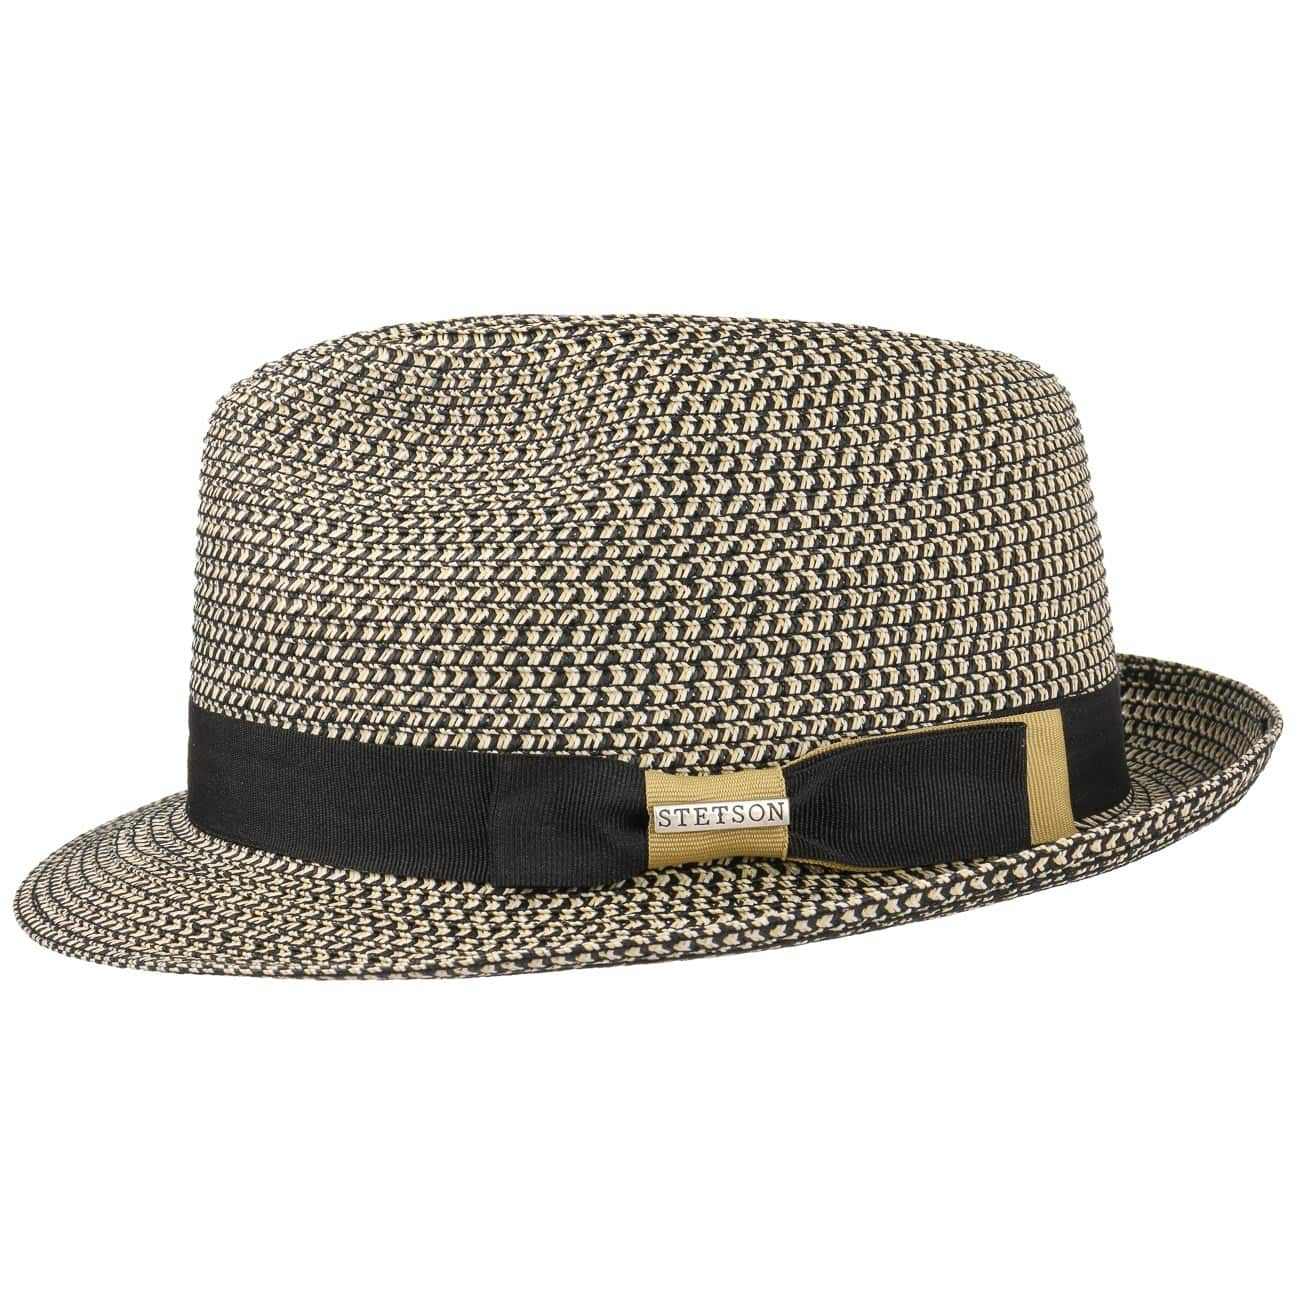 Contrast Colour Toyo Trilby Hat by Stetson  beach hat